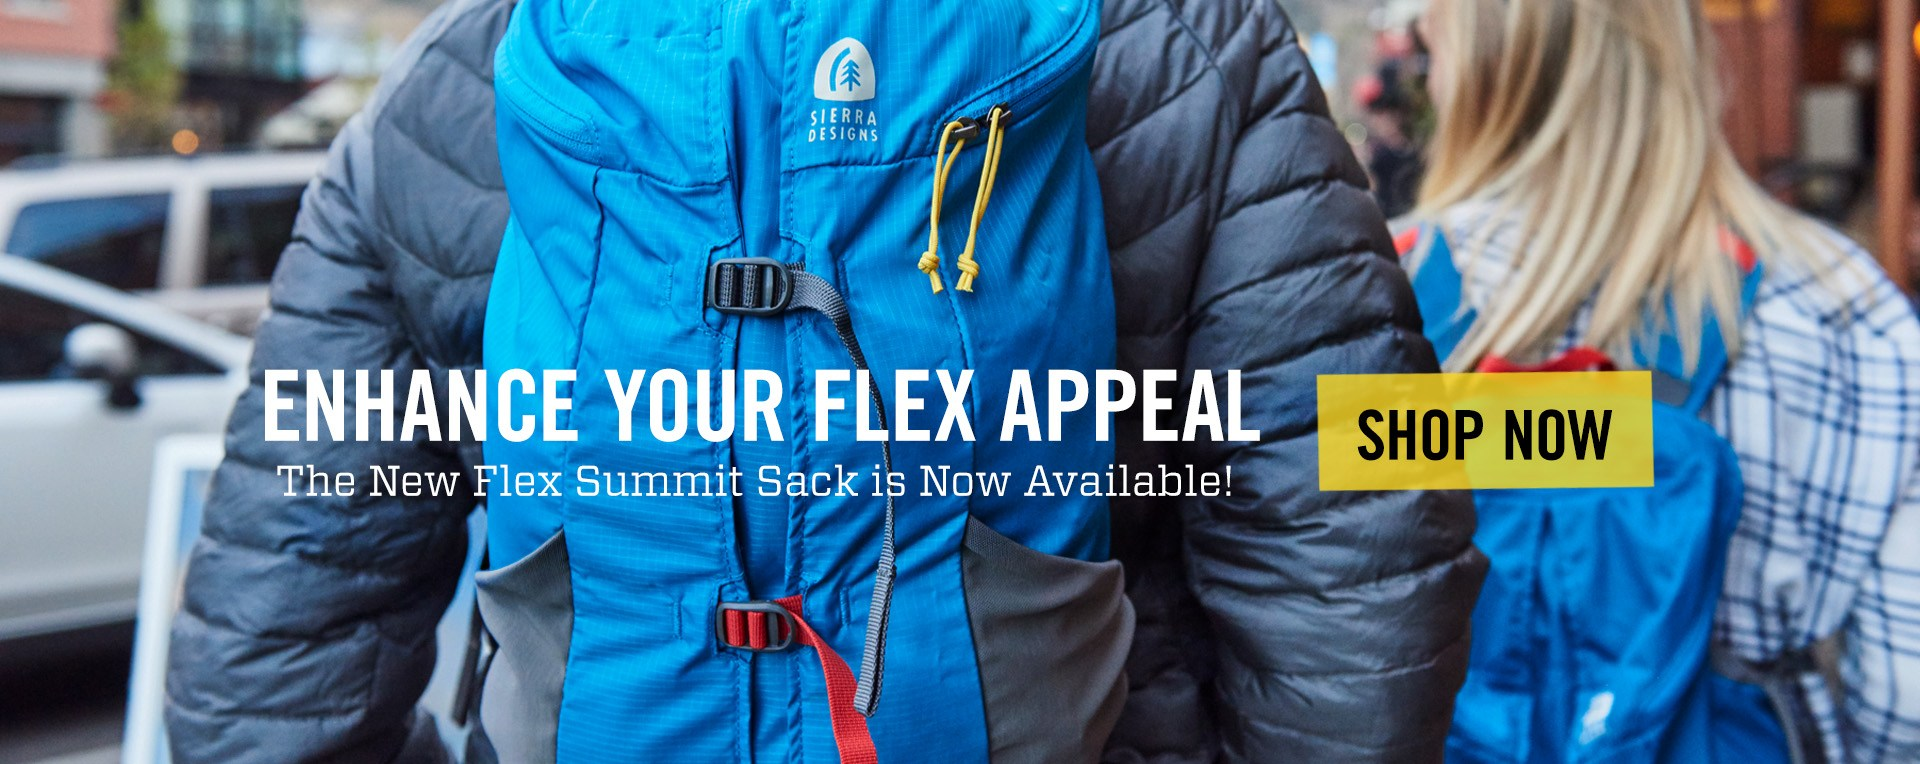 Flex Summit Sack Now Available